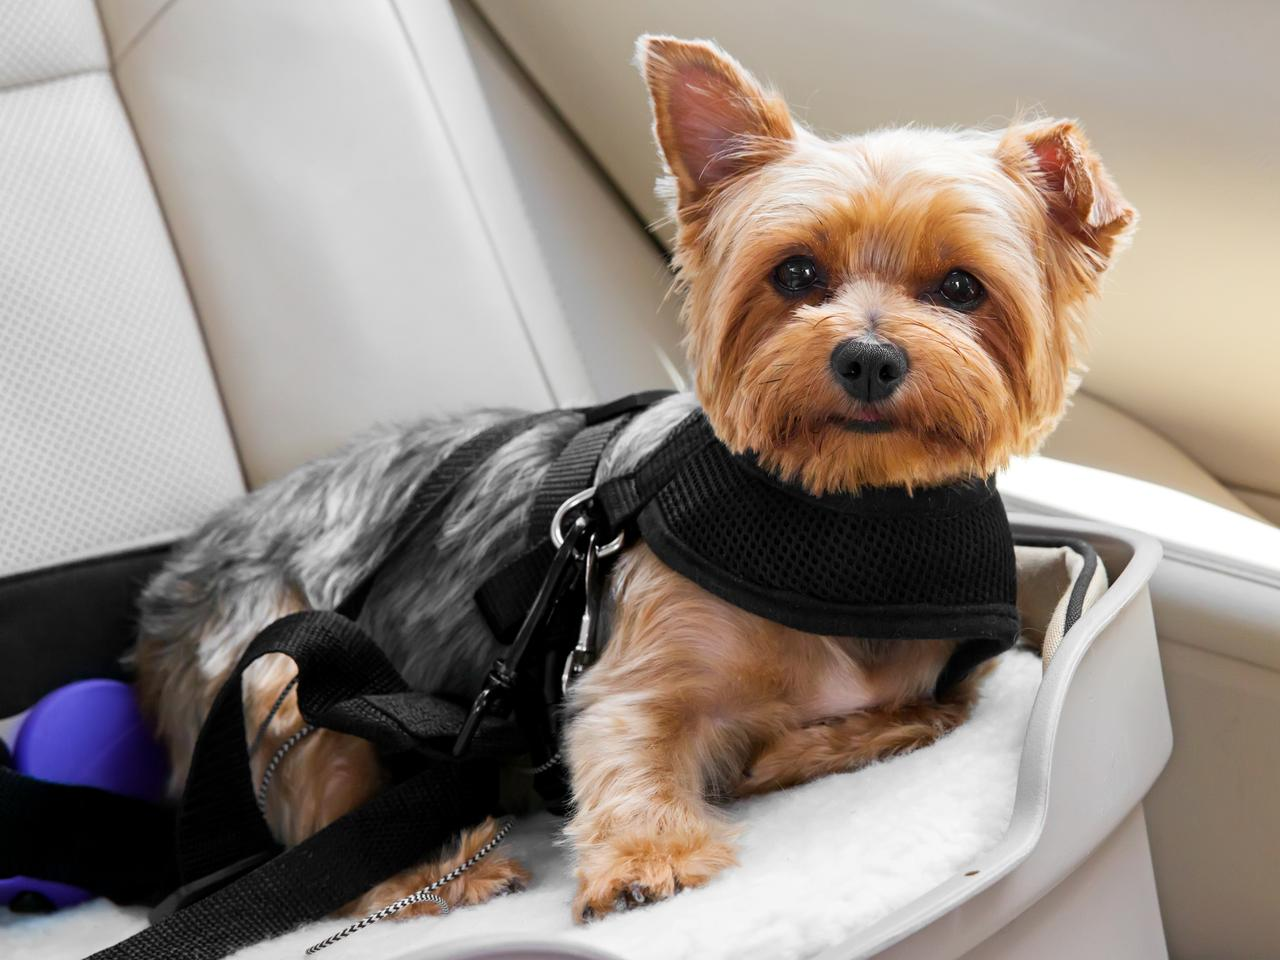 Cute dog secured in car seat